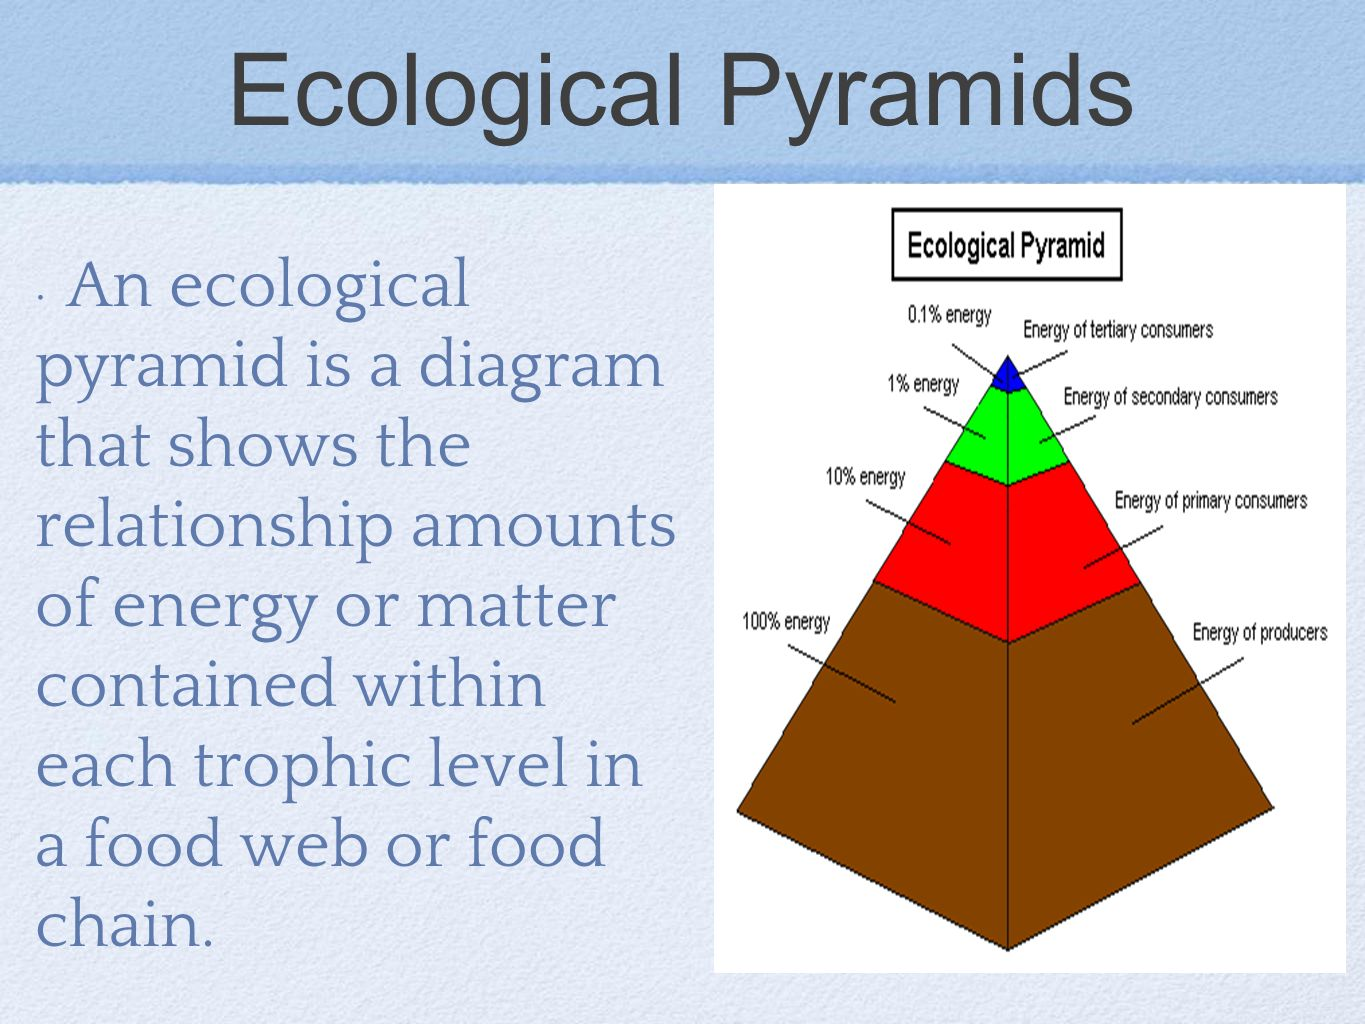 worksheet Ecological Pyramids Worksheet Answers trophic levels and ecological pyramids worksheet answers 7710592 answers